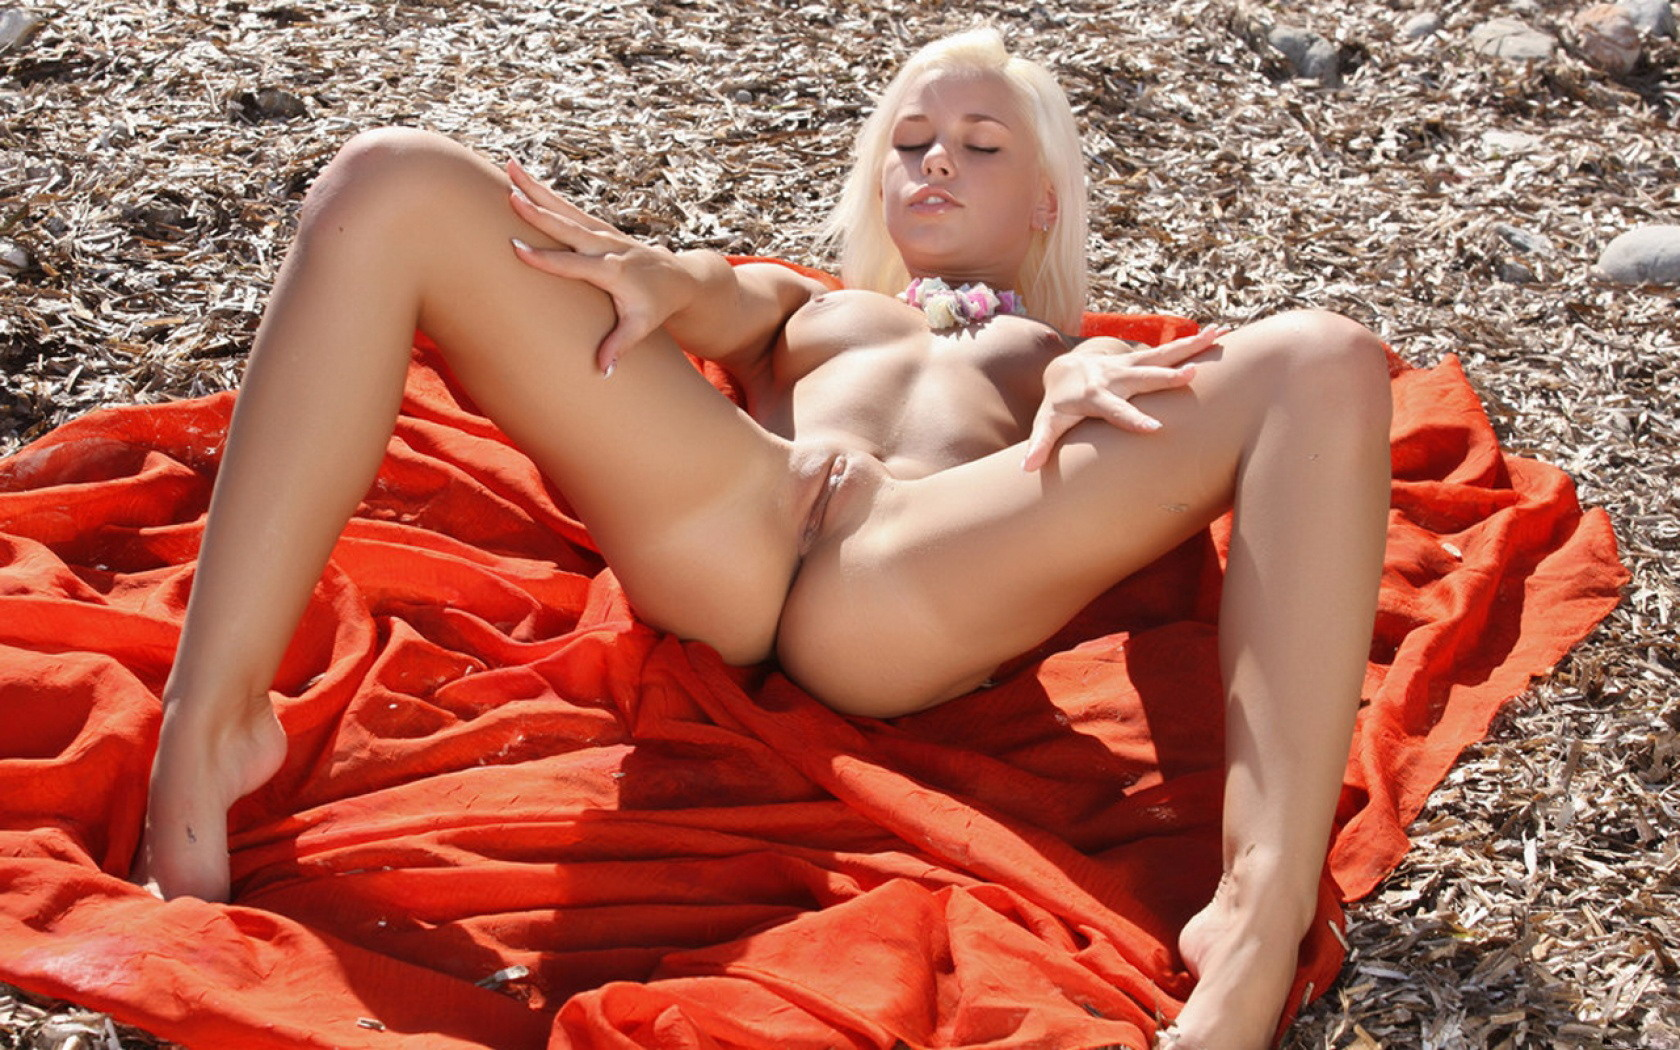 Can find shaved nude beach girls free porn pics agree